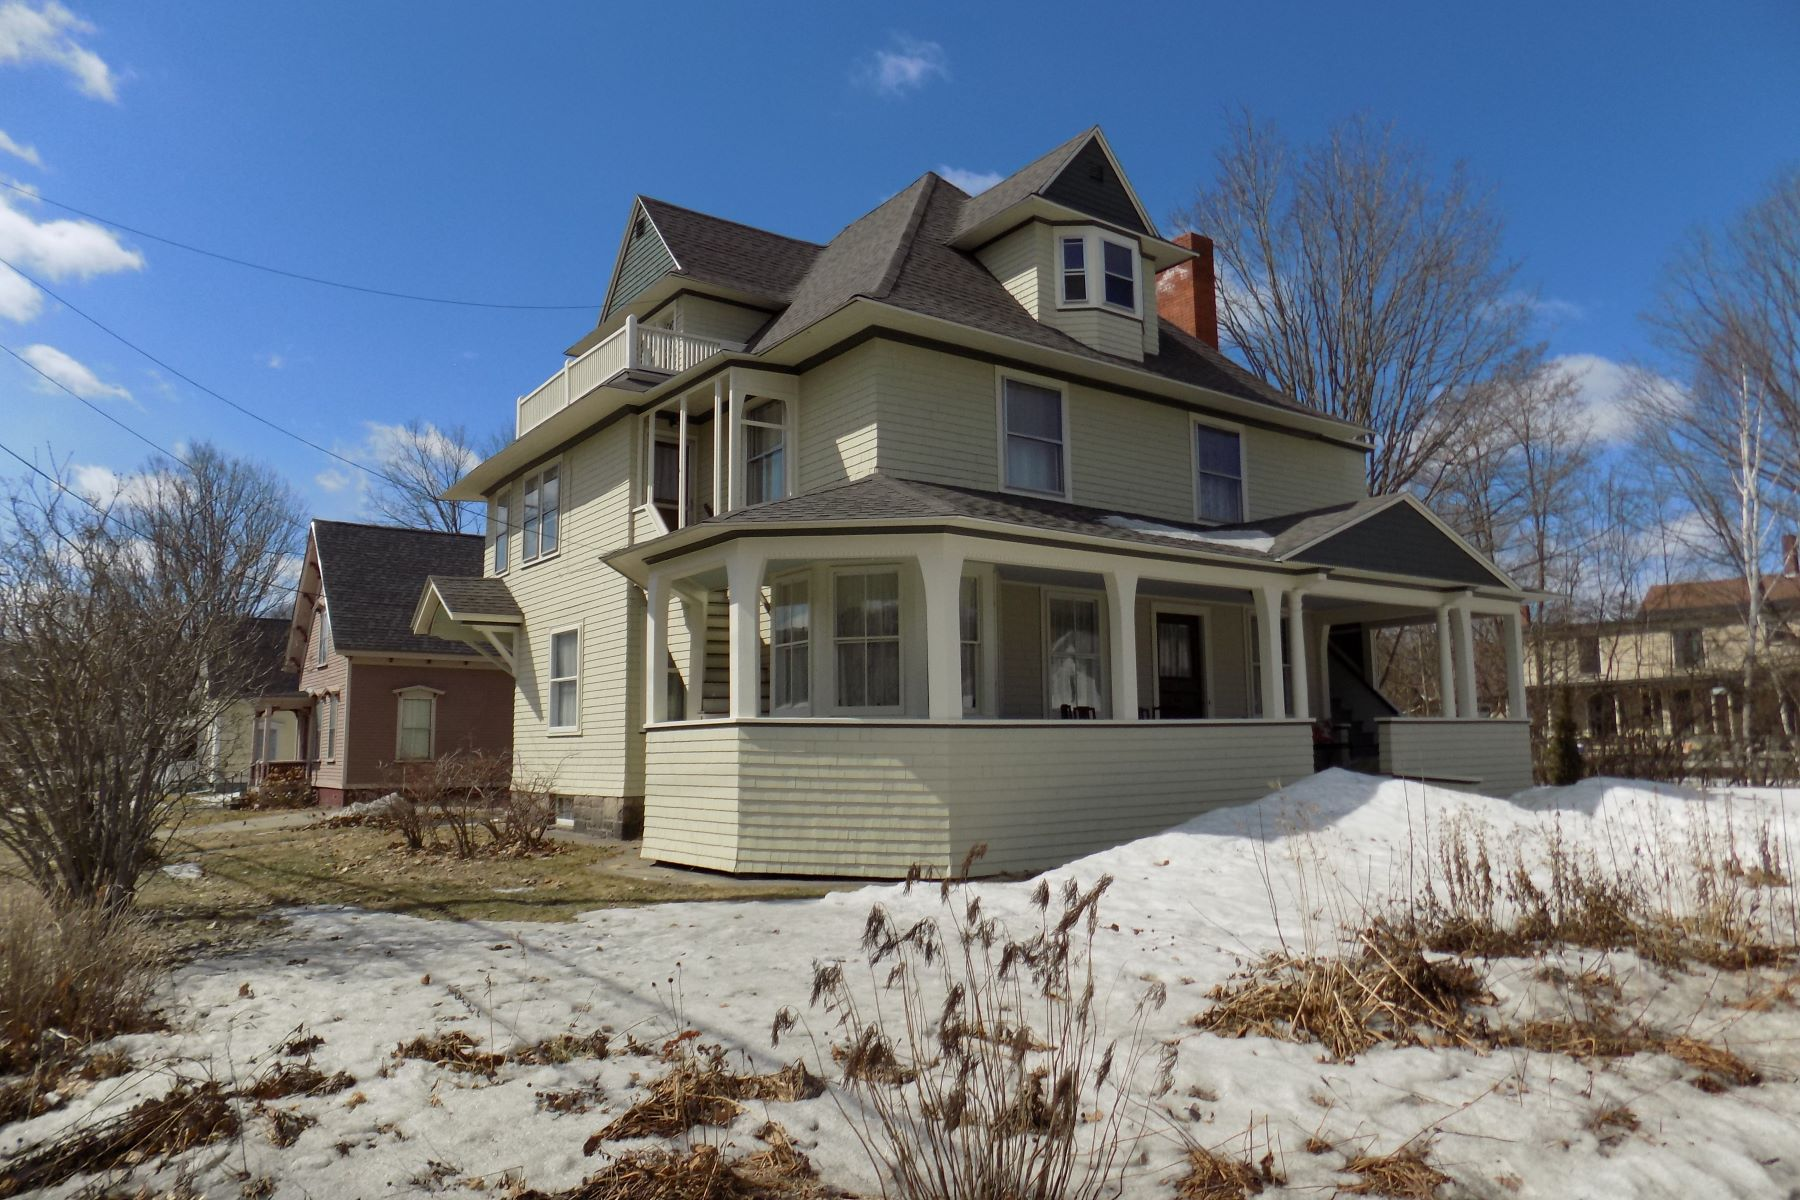 Single Family Home for Sale at 113 Church Street, St. Johnsbury 113 Church St St. Johnsbury, Vermont 05819 United States